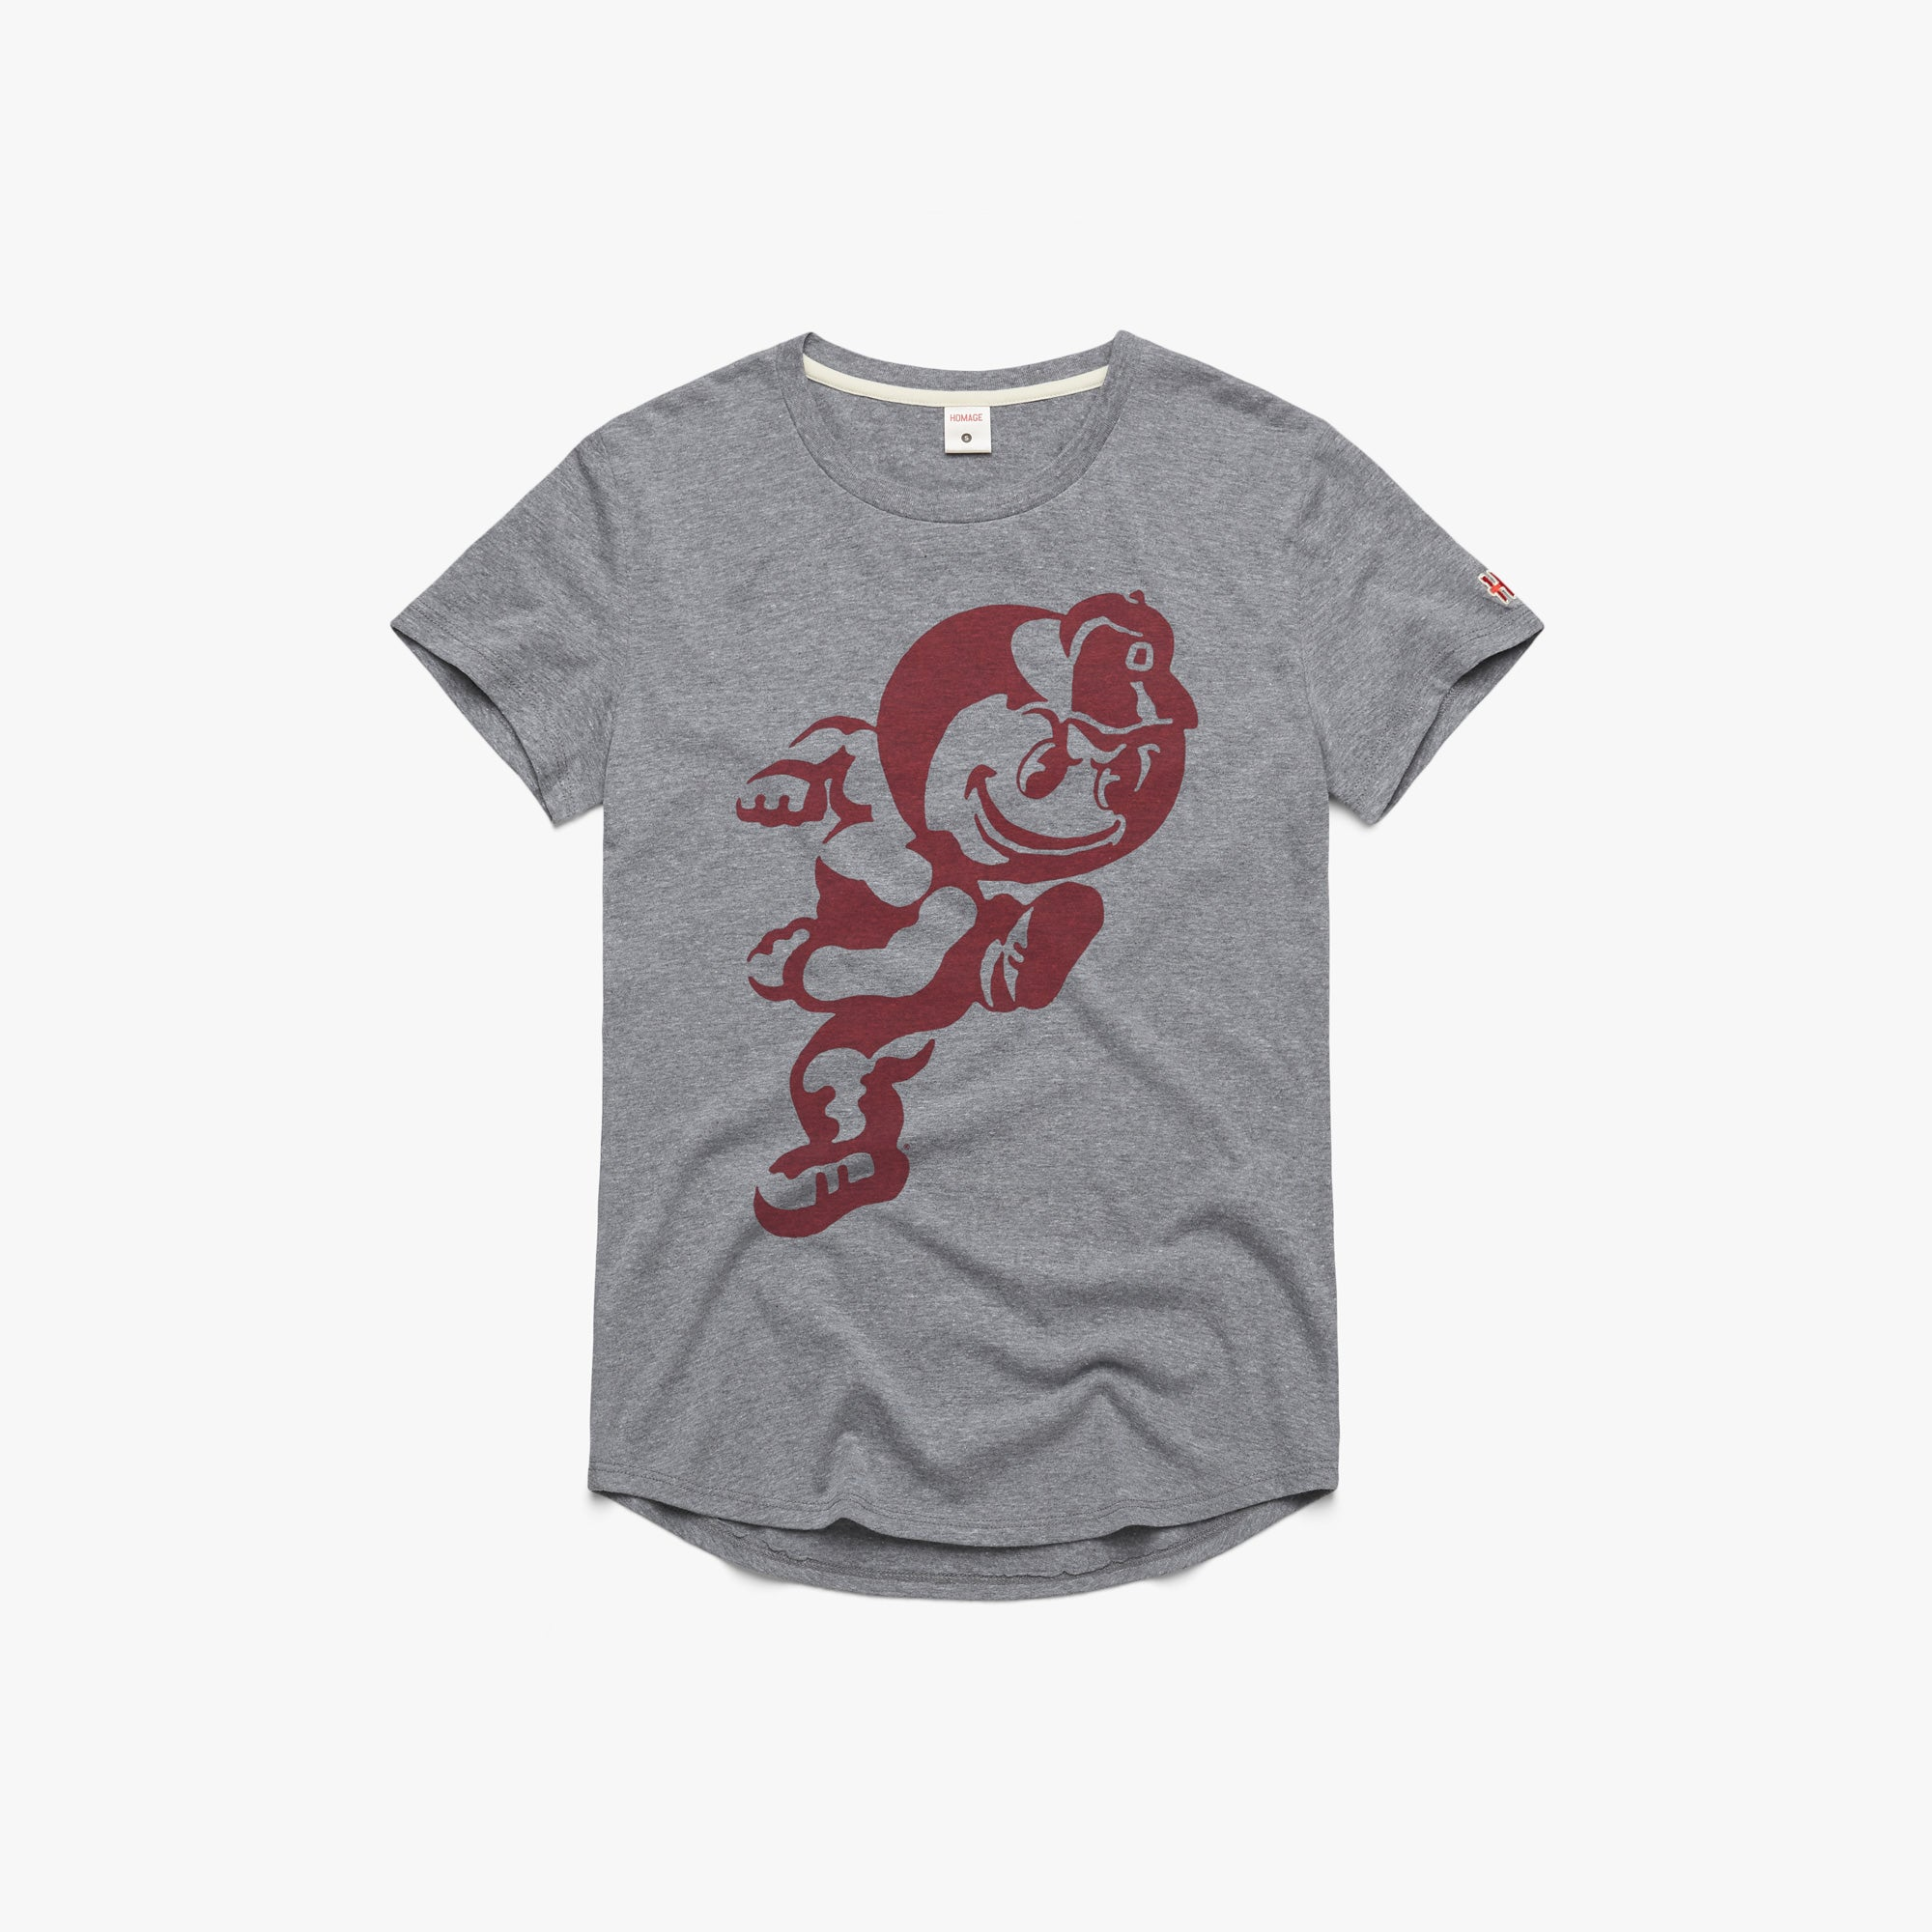 Women's Running Brutus The Buckeye